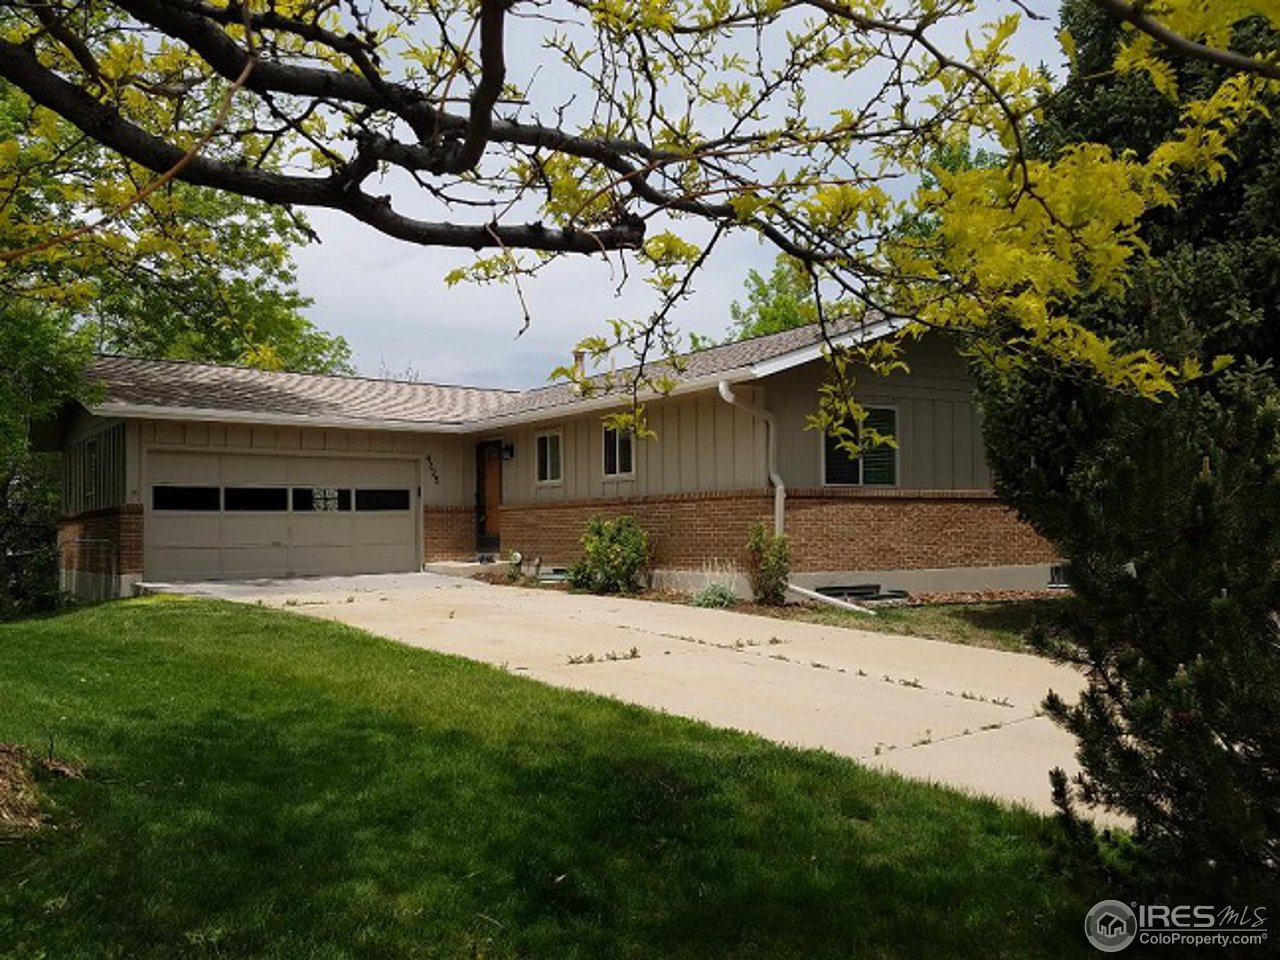 4325 Butler Cir, Boulder CO 80305